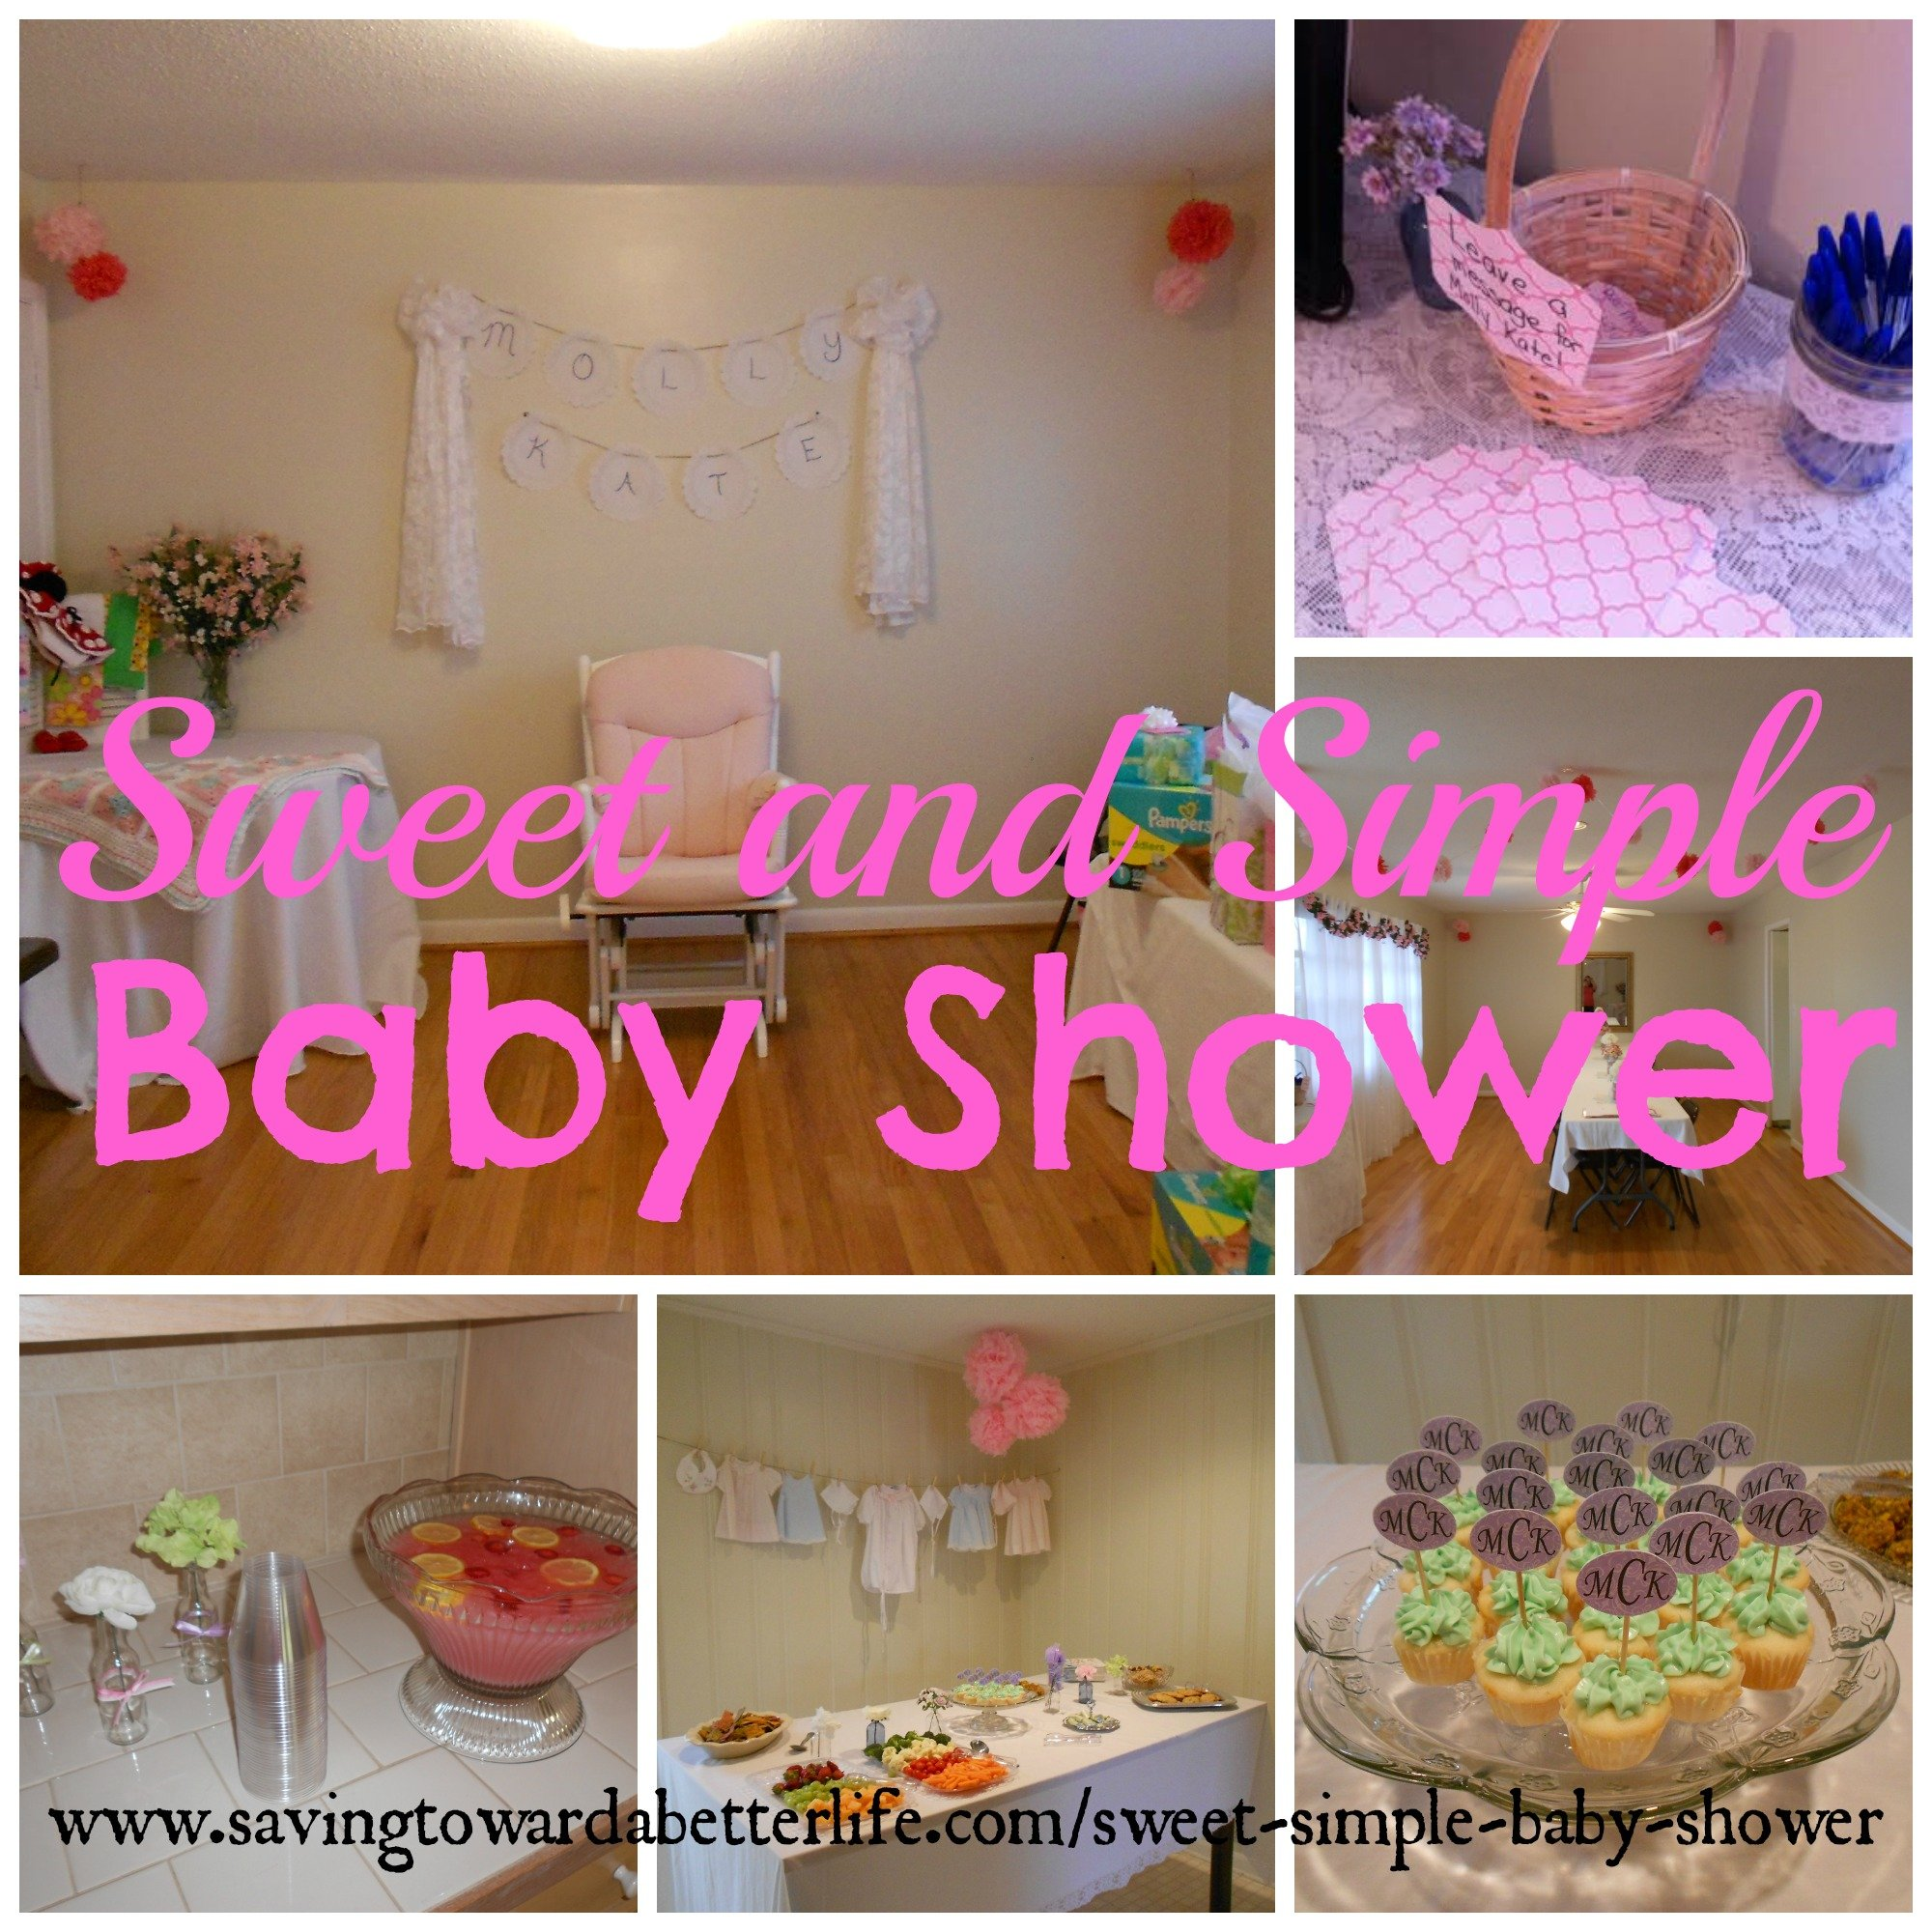 Sweet and Simple Baby Shower Ideas Saving Toward A Better Life